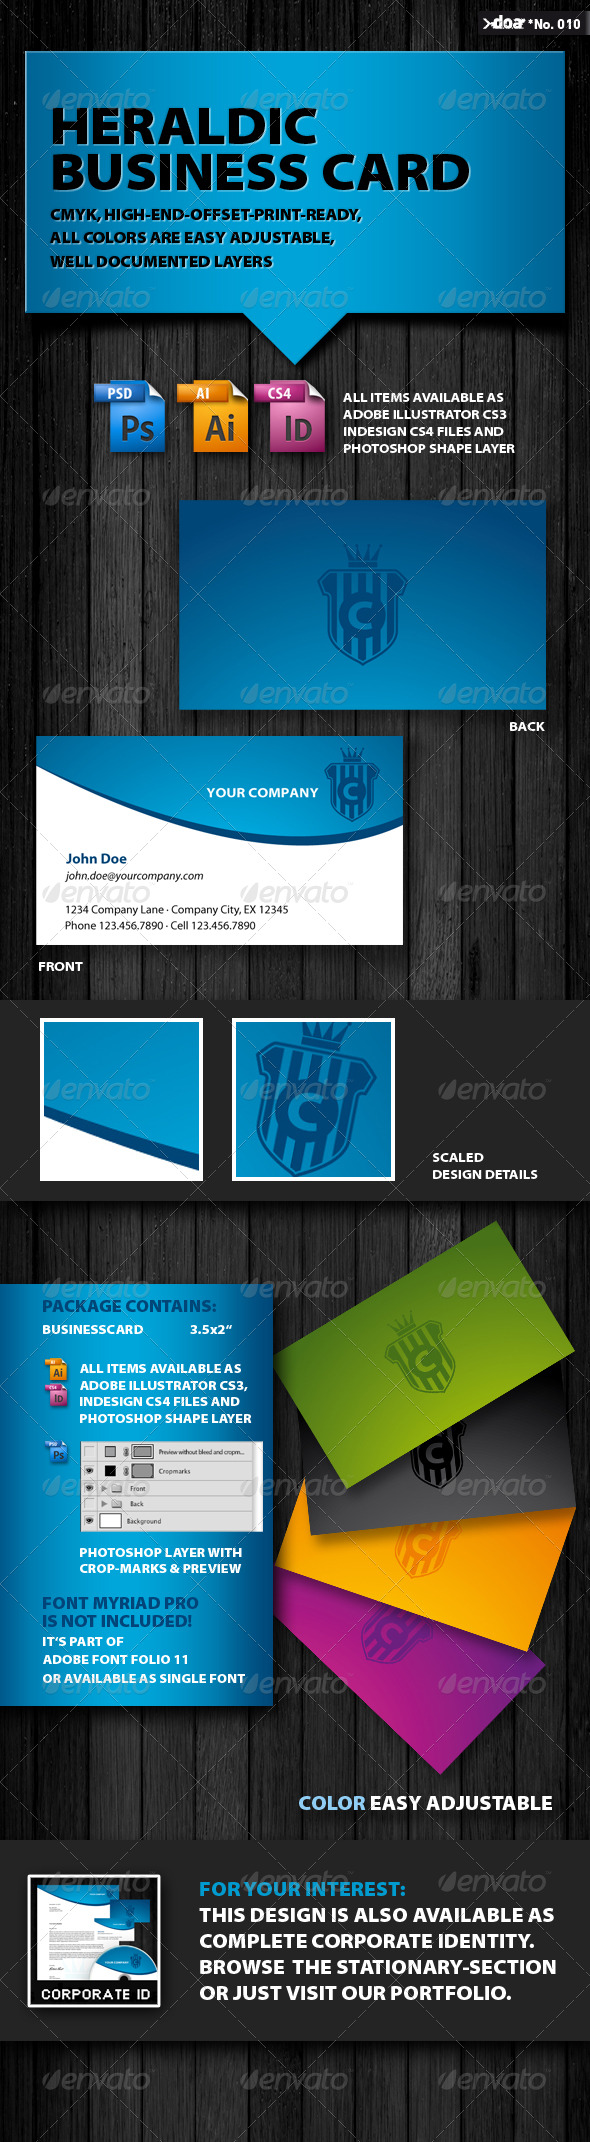 Heraldic Business Card - Corporate Business Cards